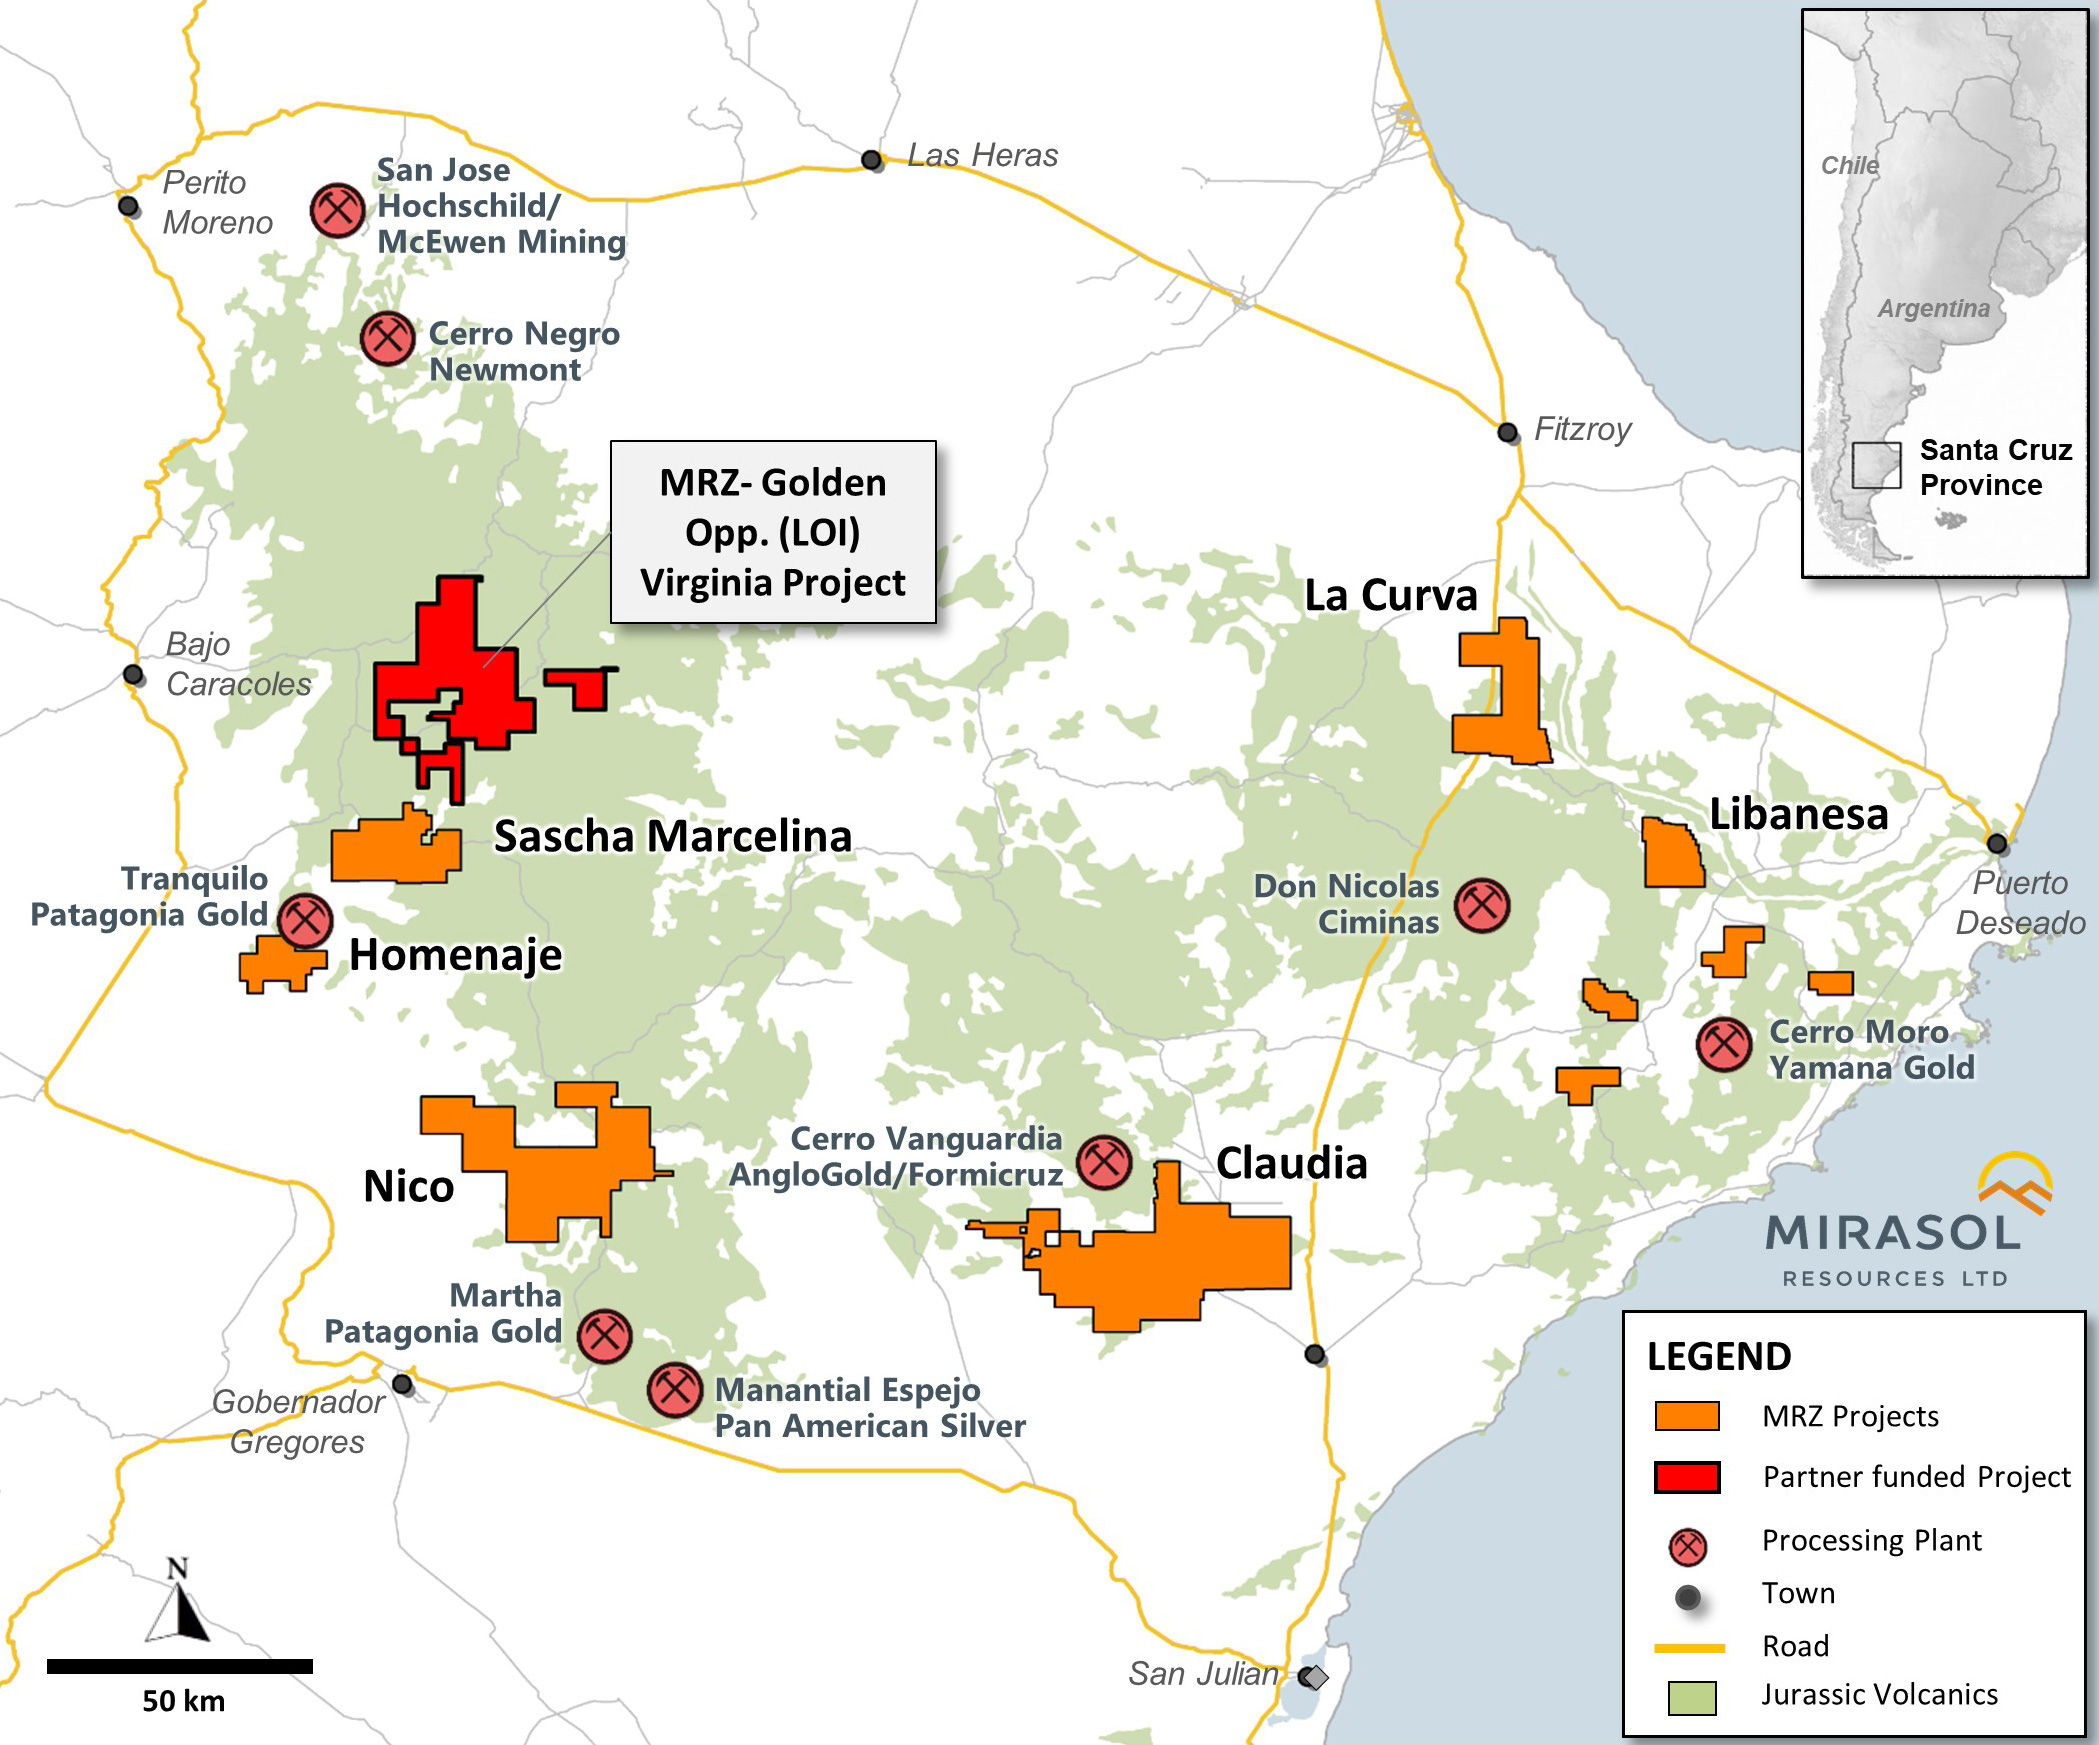 Location Map of the Virginia Silver Project in the Santa Cruz Province of Argentina